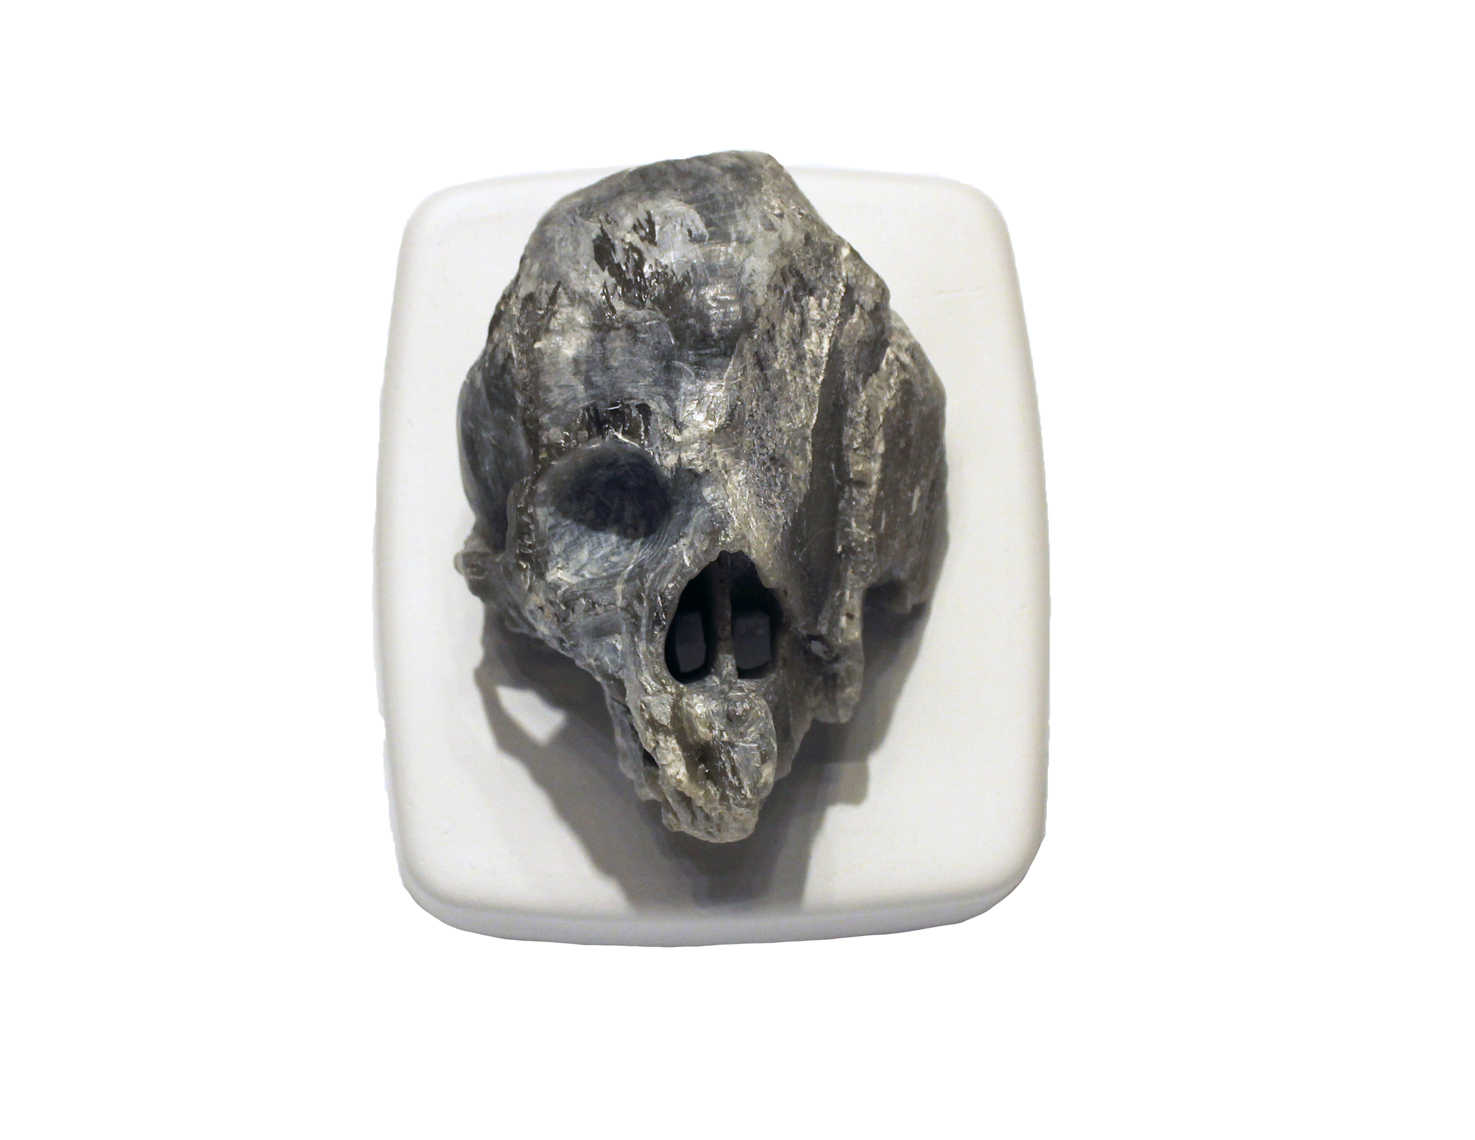 SeatoSkyMomentoMoriwestskullmoquette_2014_alabaster_7.5x11x7.5_3x4.5x3_Available